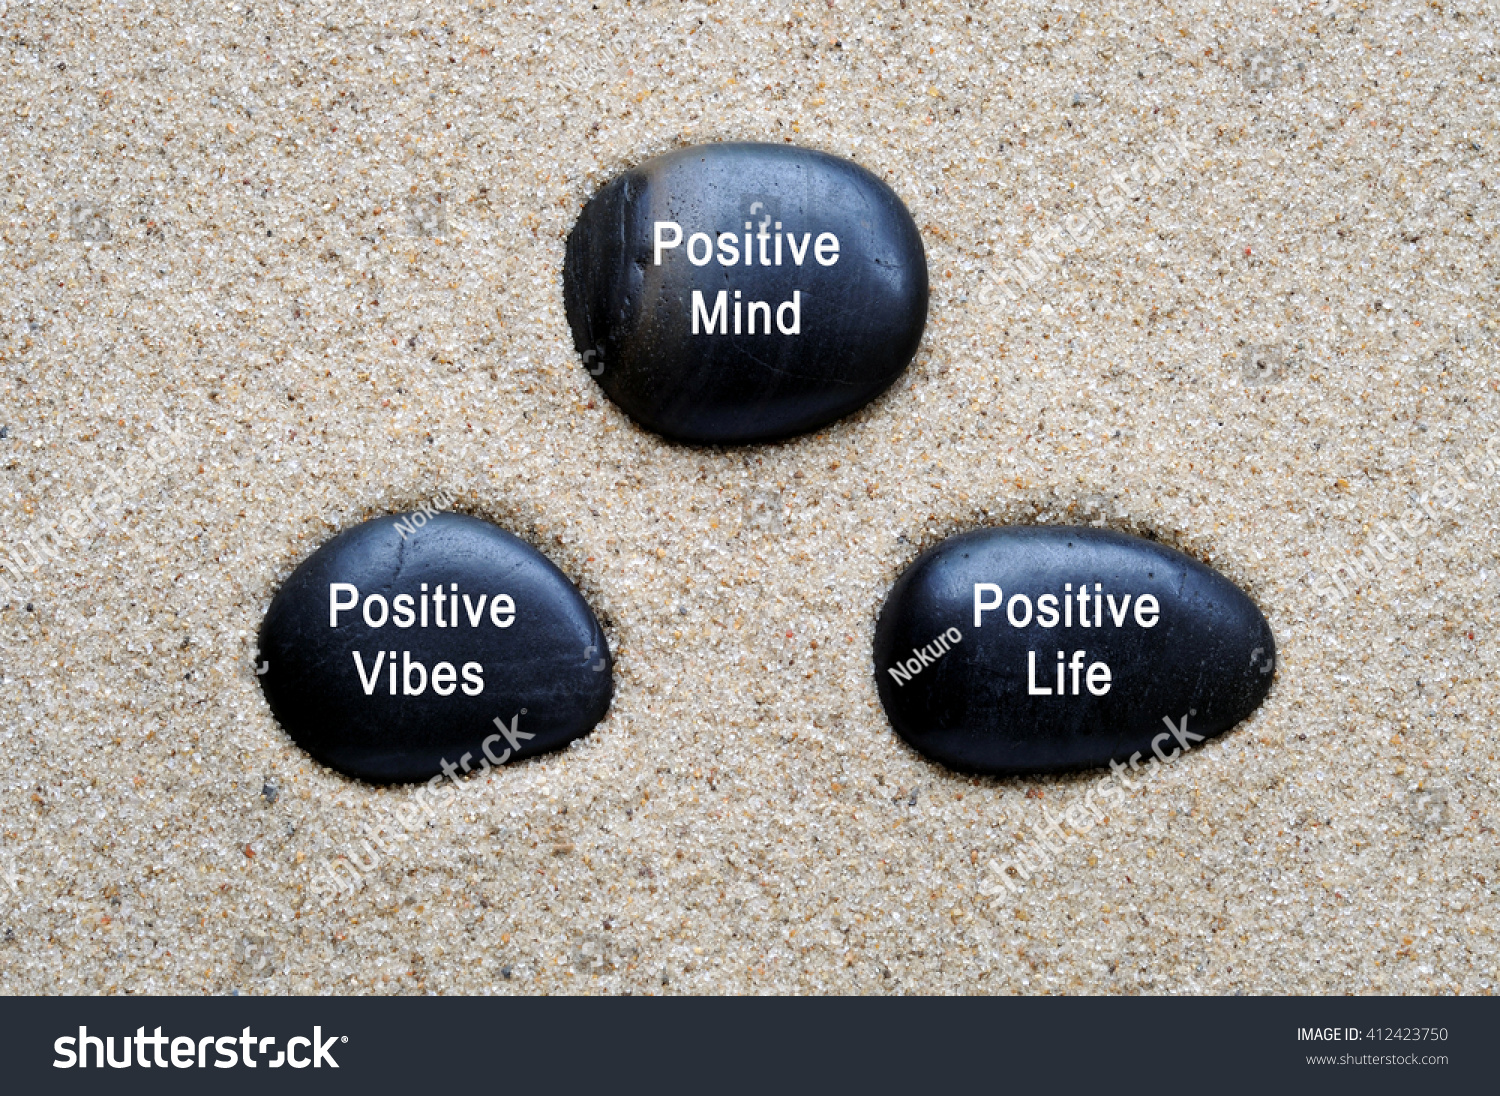 Positive Mind Positive Vibes Positive Life Stock Photo (Edit